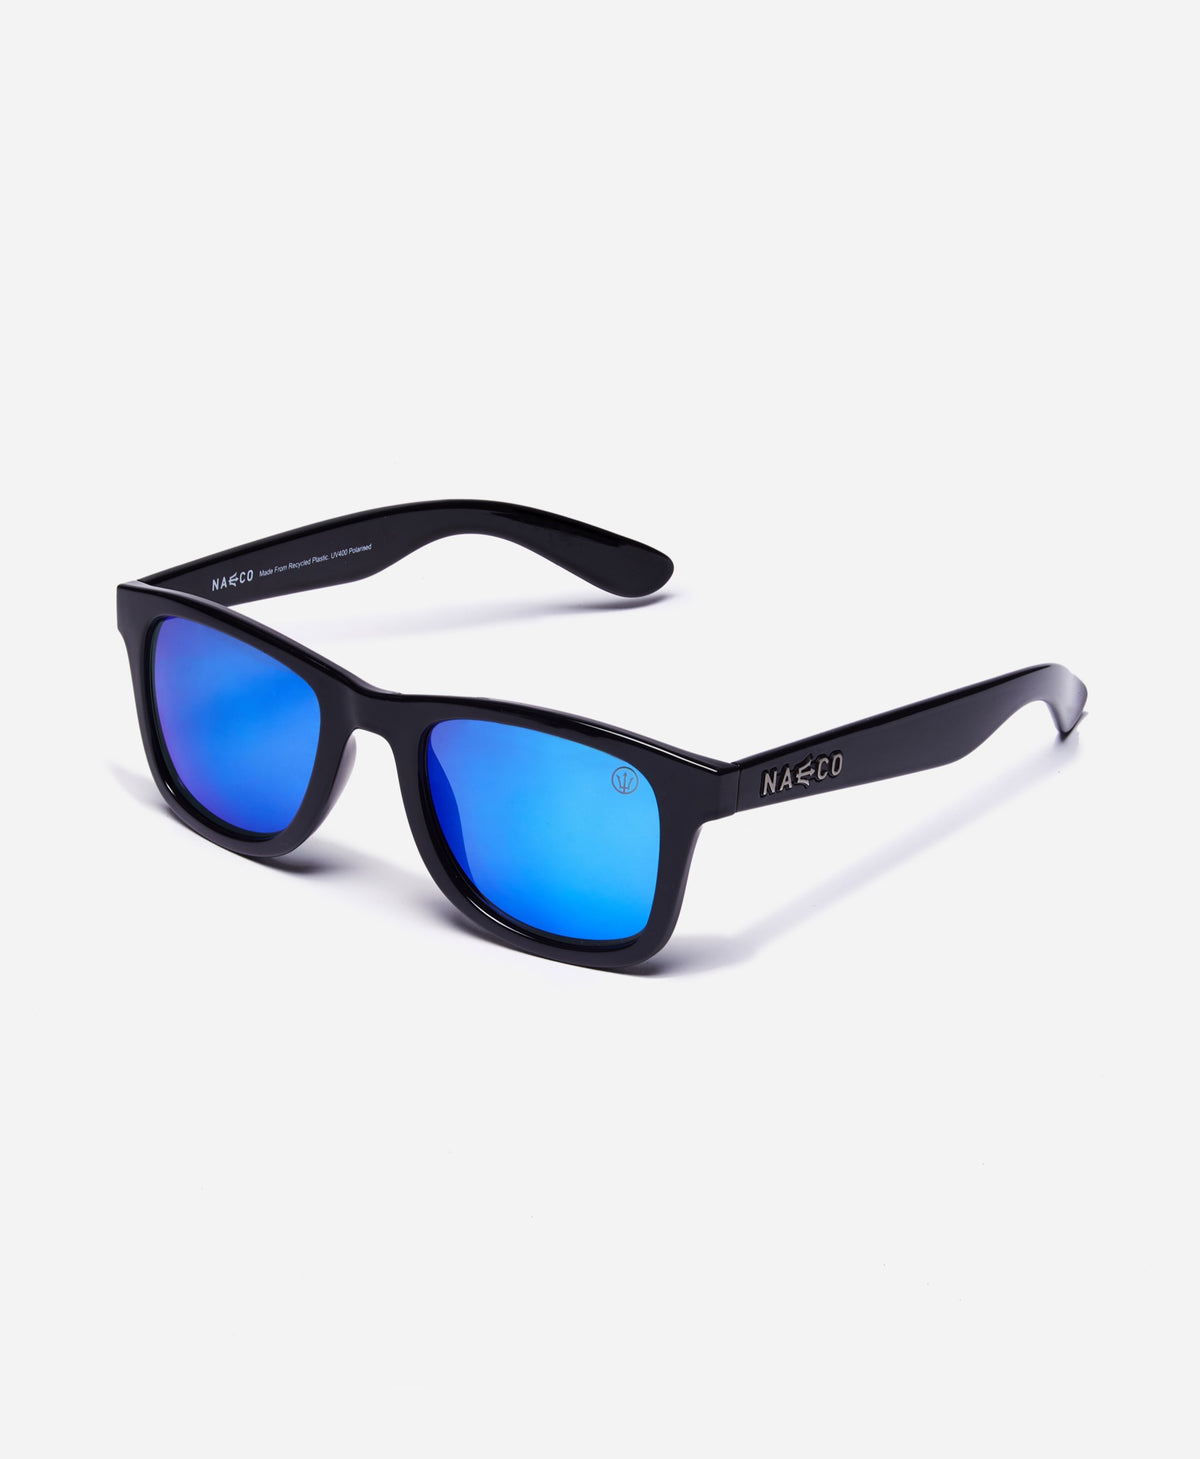 Trident UV Polarised Sunglasses - Matte Frame - Mirrored Sea Blue